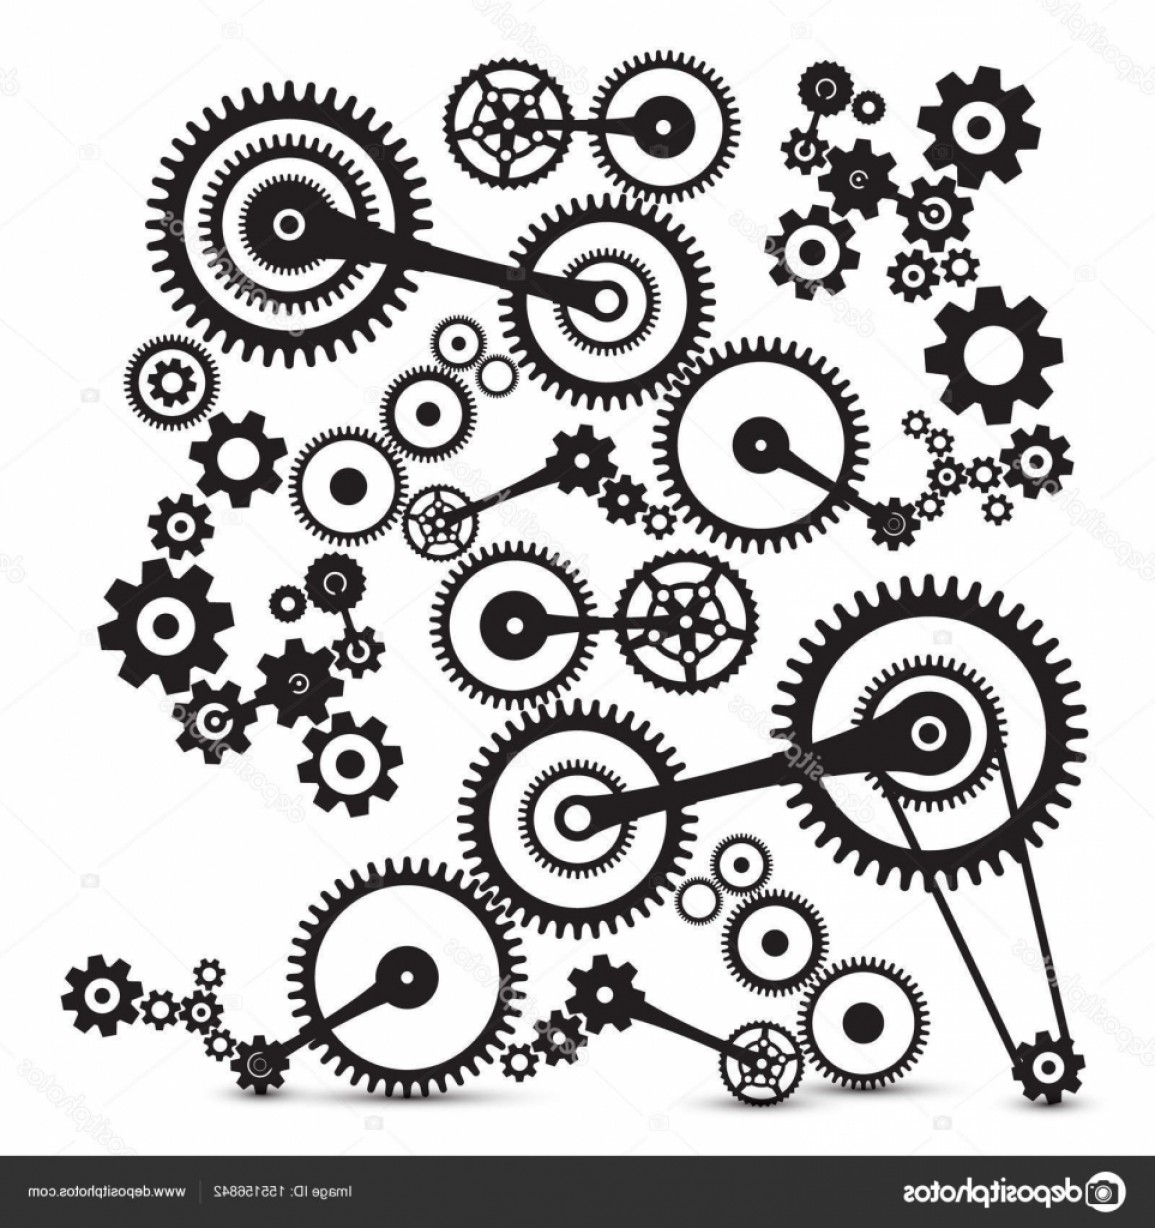 Watch Gears Vector: Stock Illustration Cogs Gears Retro Machinery Vector